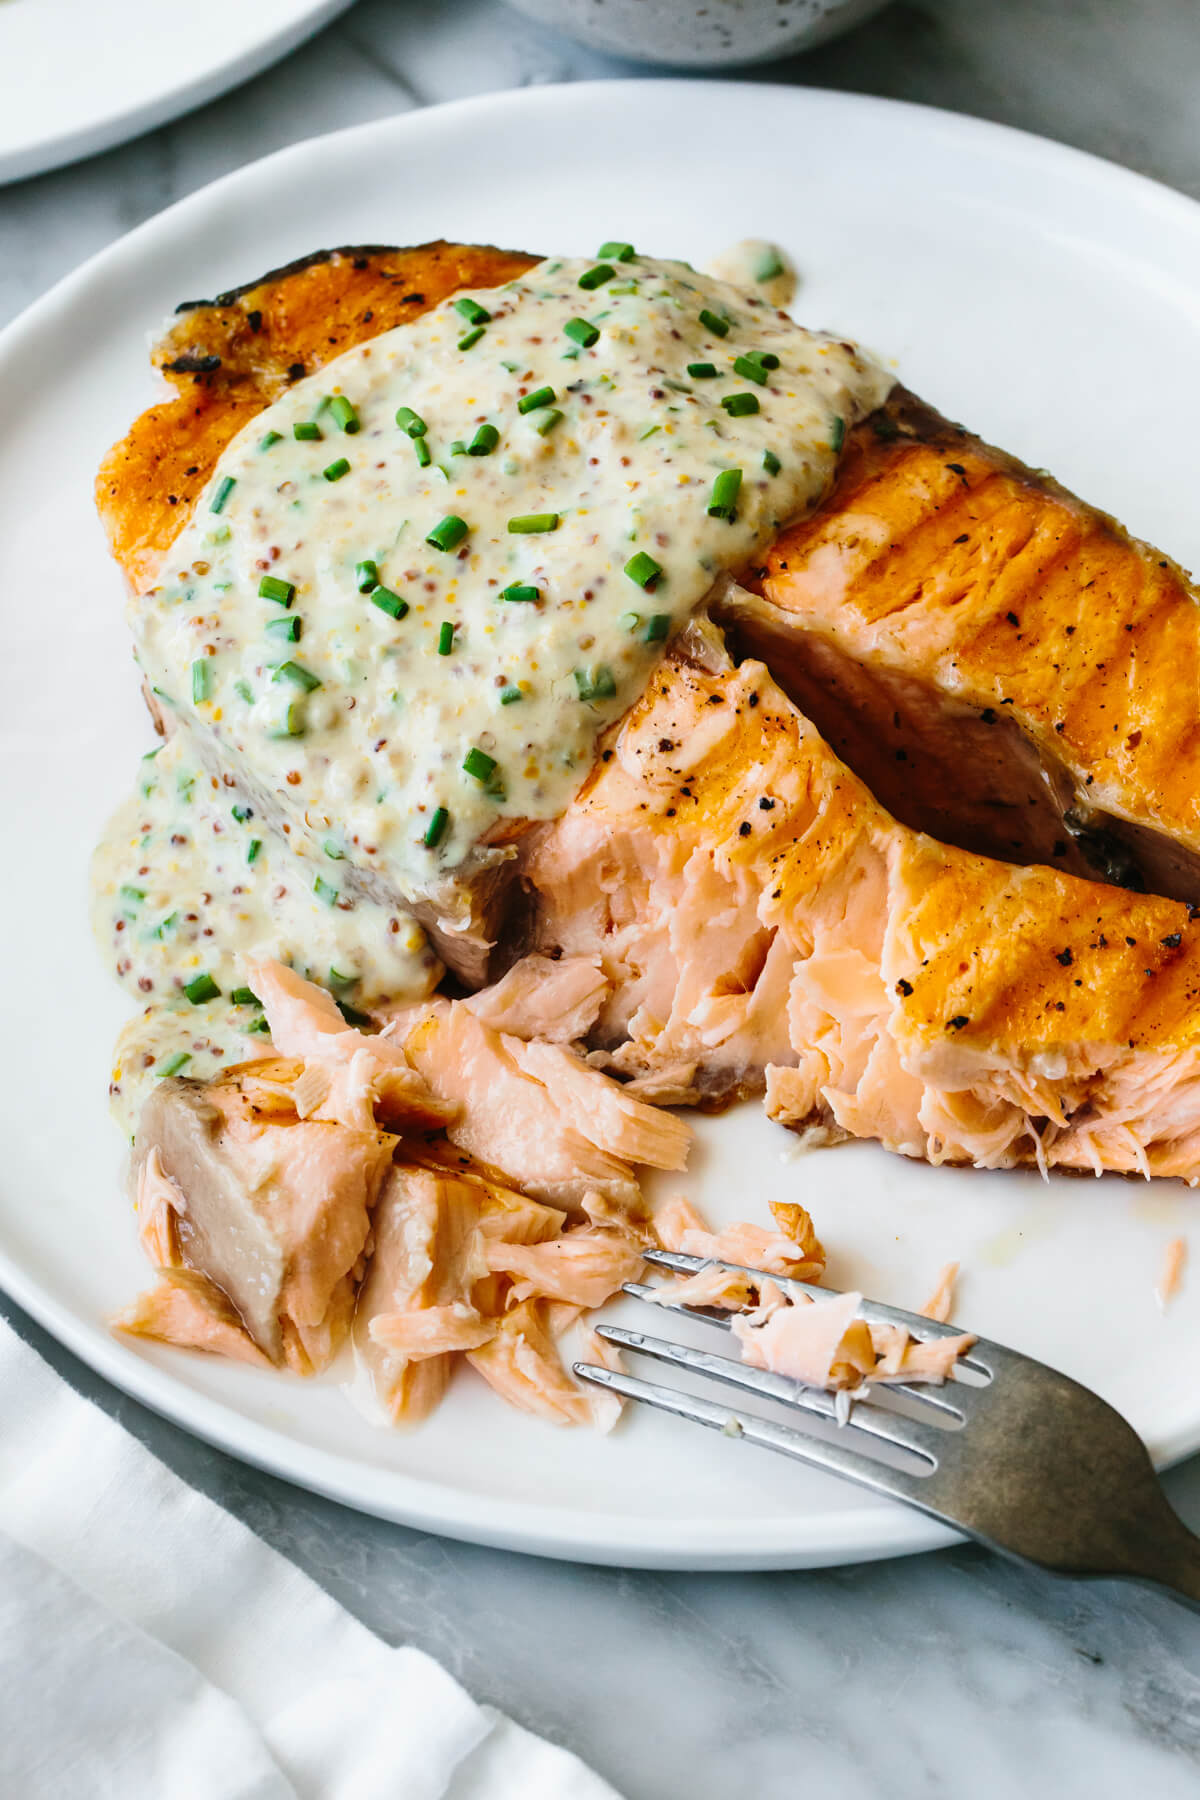 Grilled salmon steak on a plate with a fork